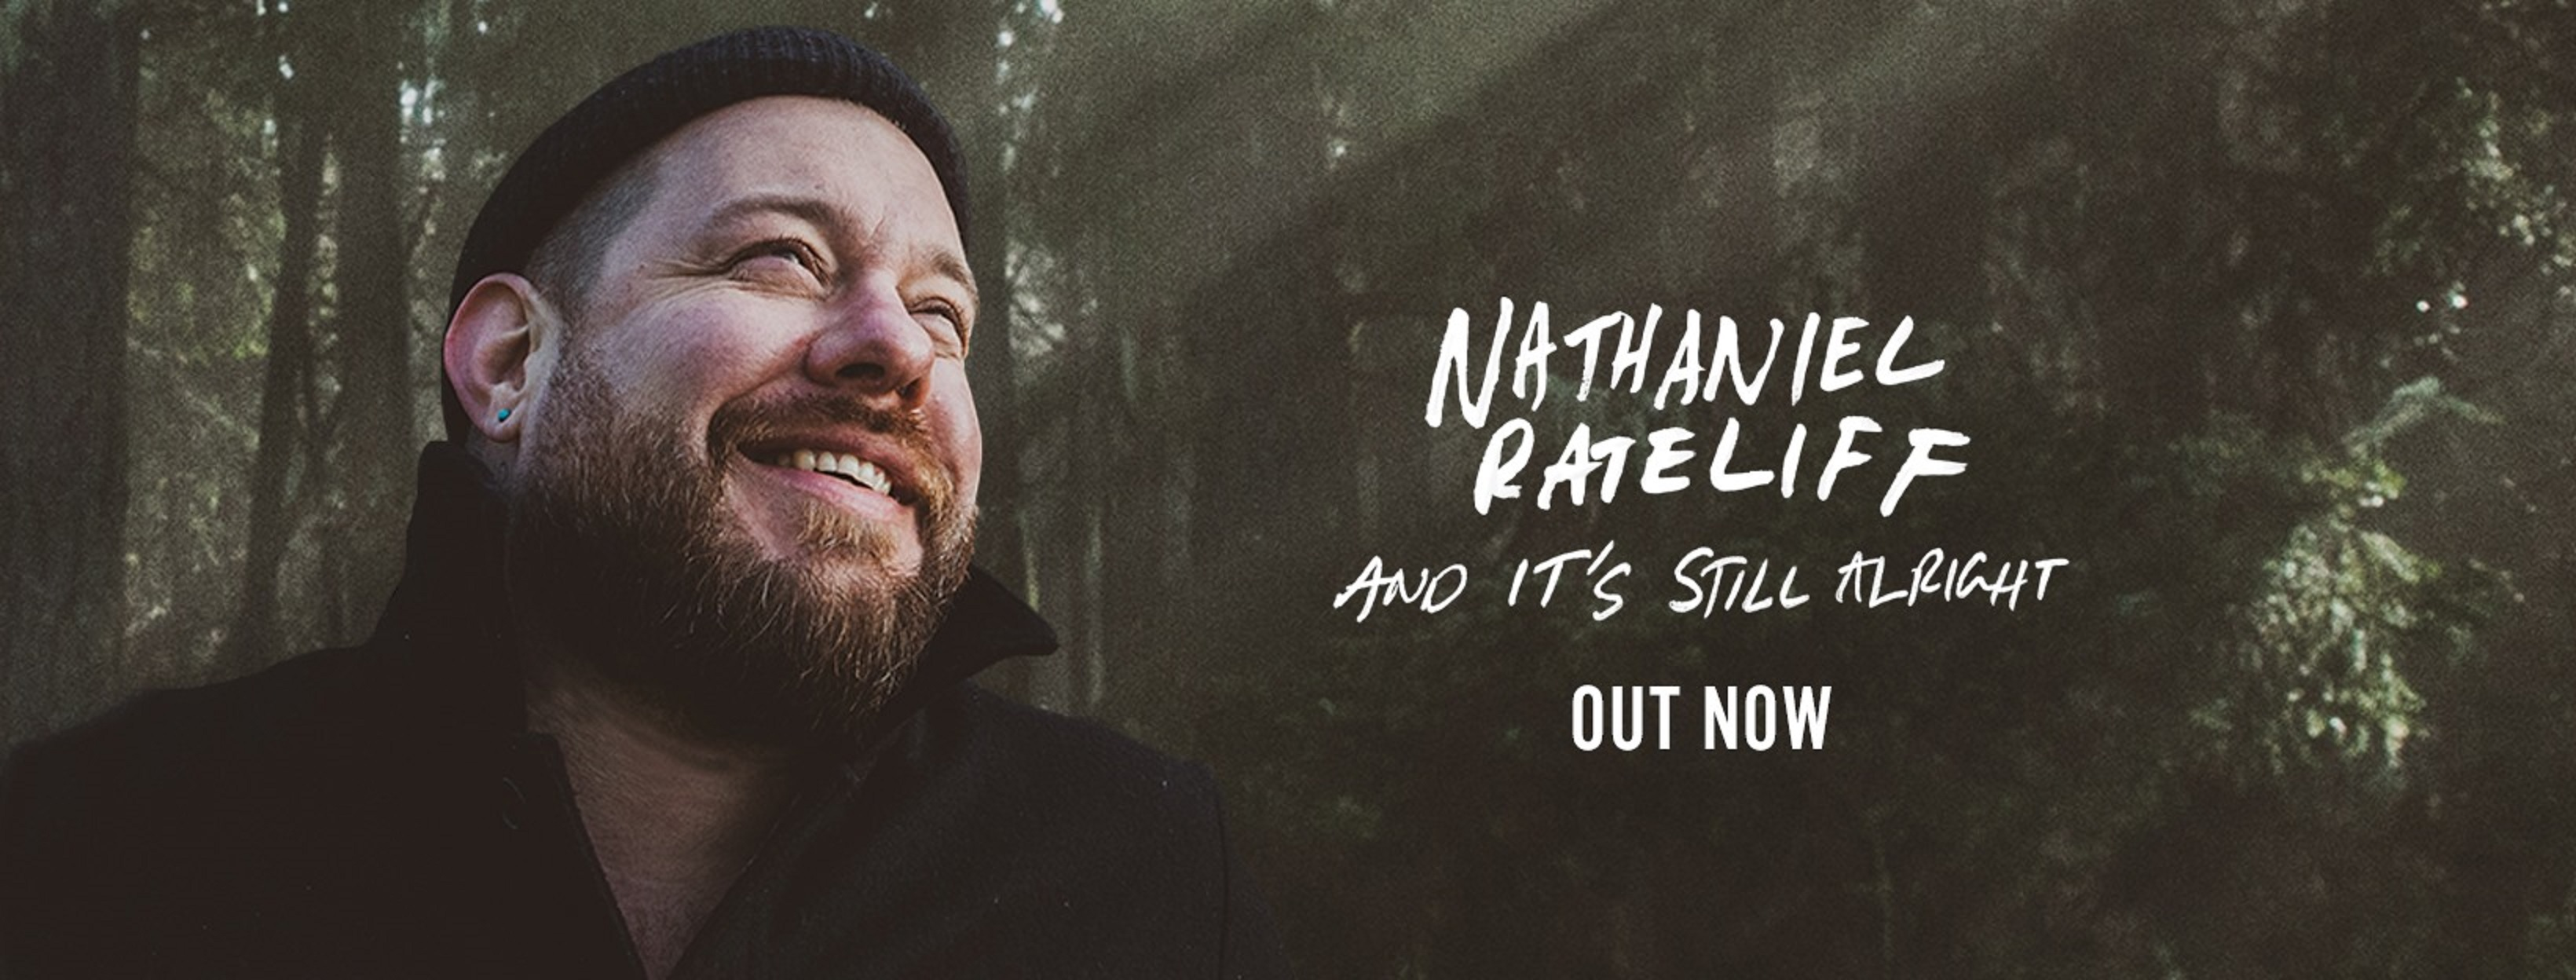 "Nathaniel Rateliff performs on ""The Late Show with Stephen Colbert"" live show!"